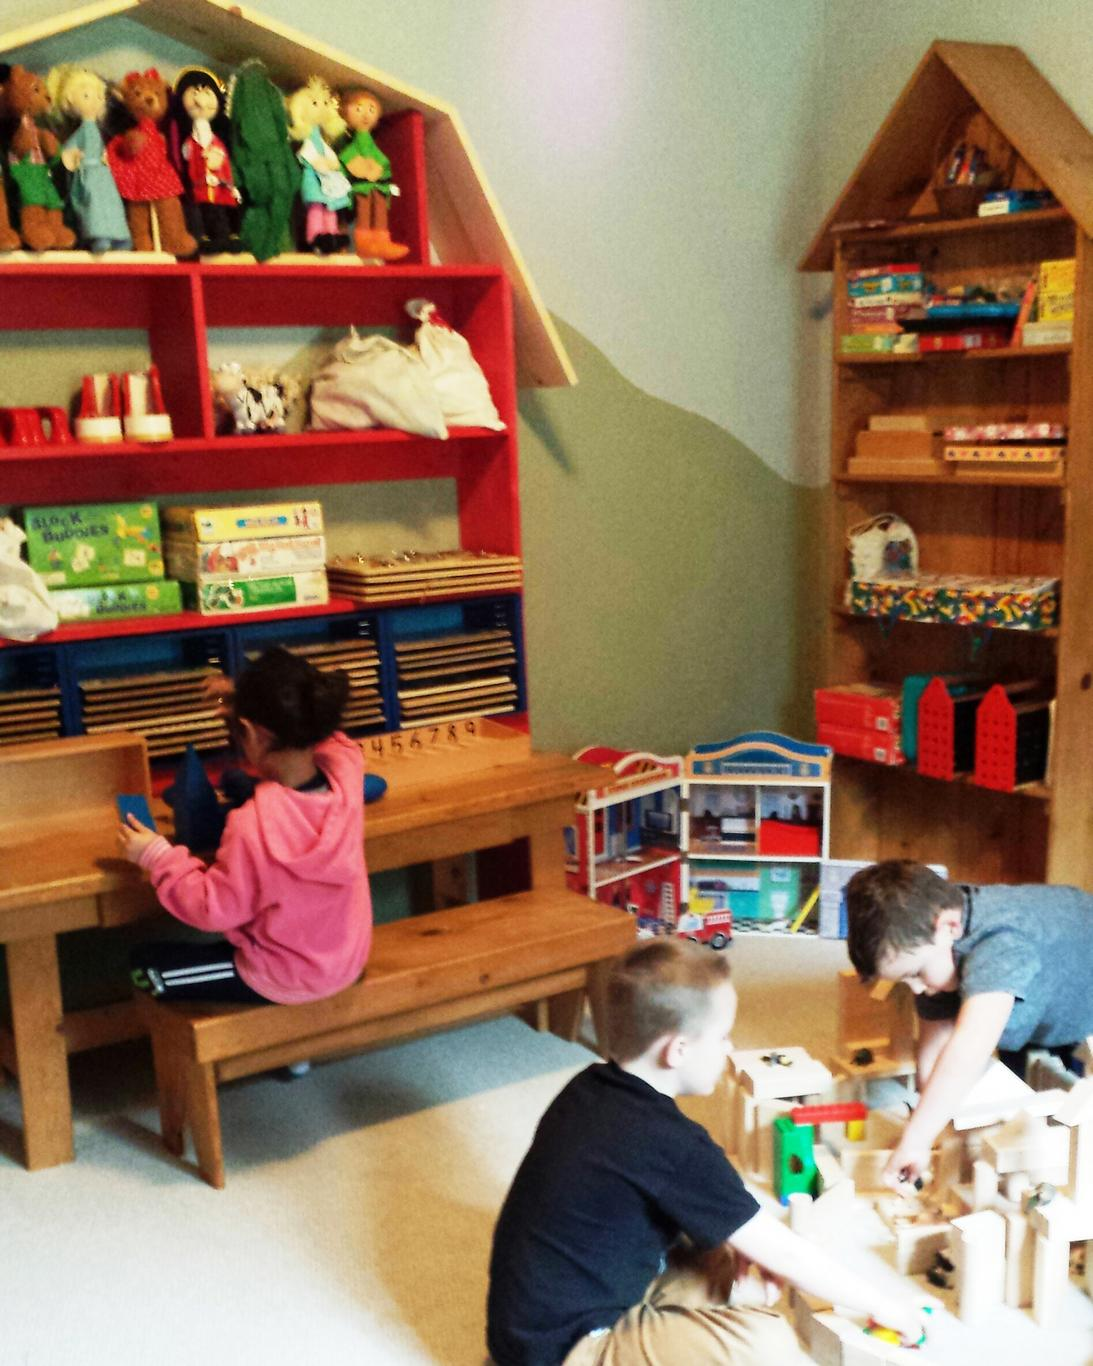 Indoor play room has shelves filled with baskets of toys and books